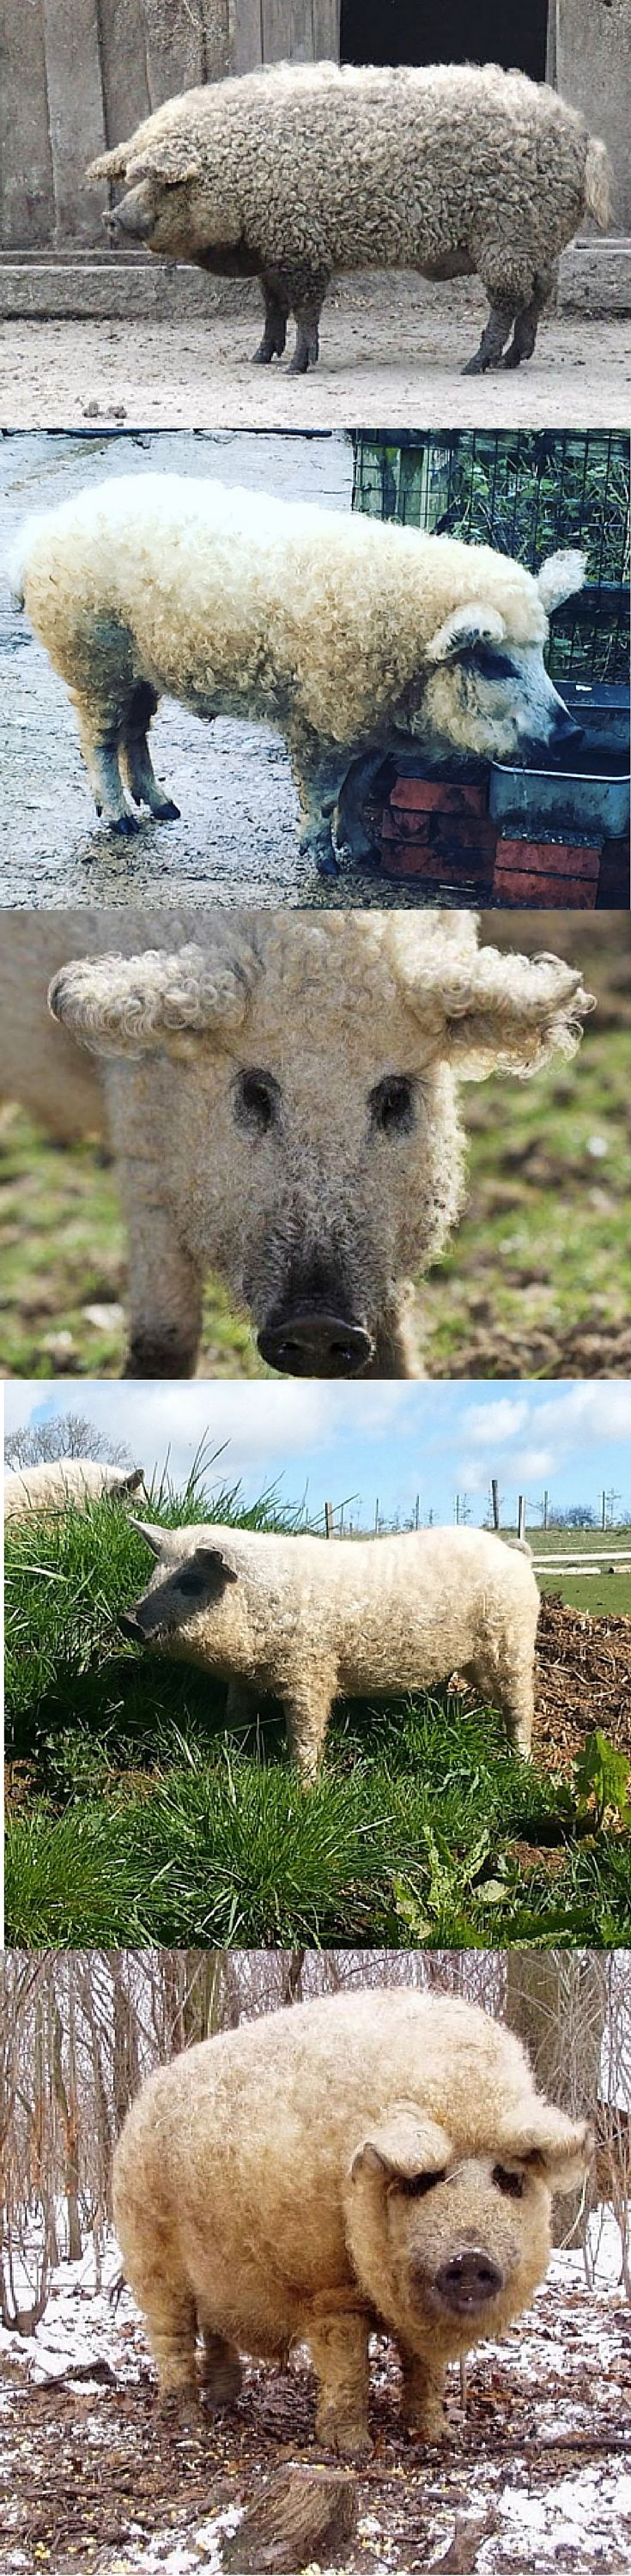 """Fuzzy pigs! These are called Mangalica pigs, aka """"sheep pigs"""" because of their fuzzy, curly coats."""